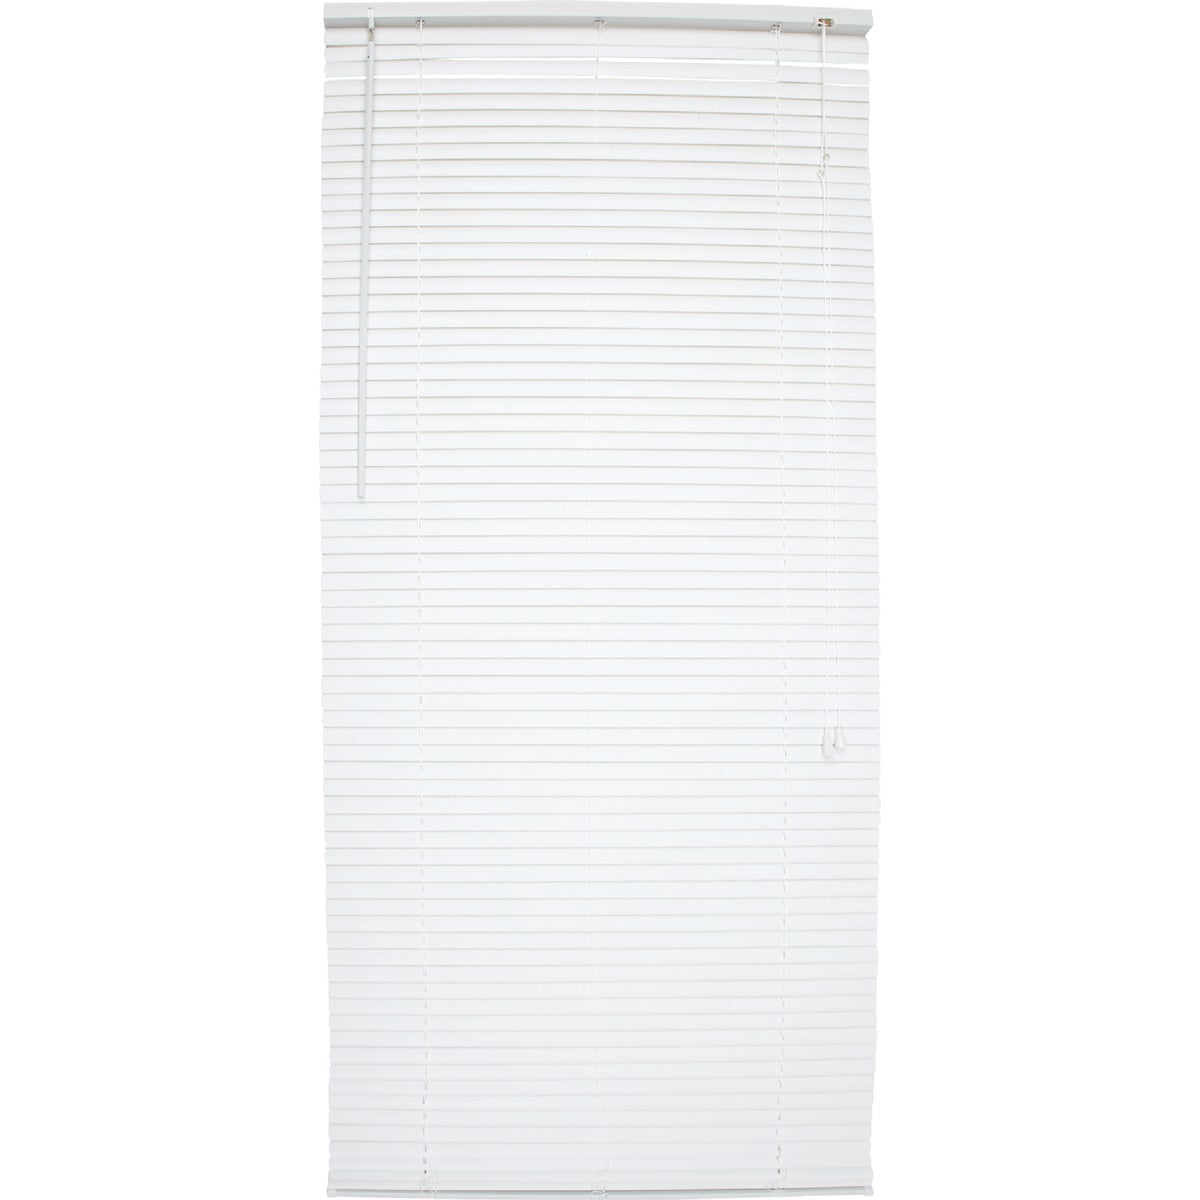 28X72 WHITE MINI BLIND - 615005 by Lotus Wind Incom